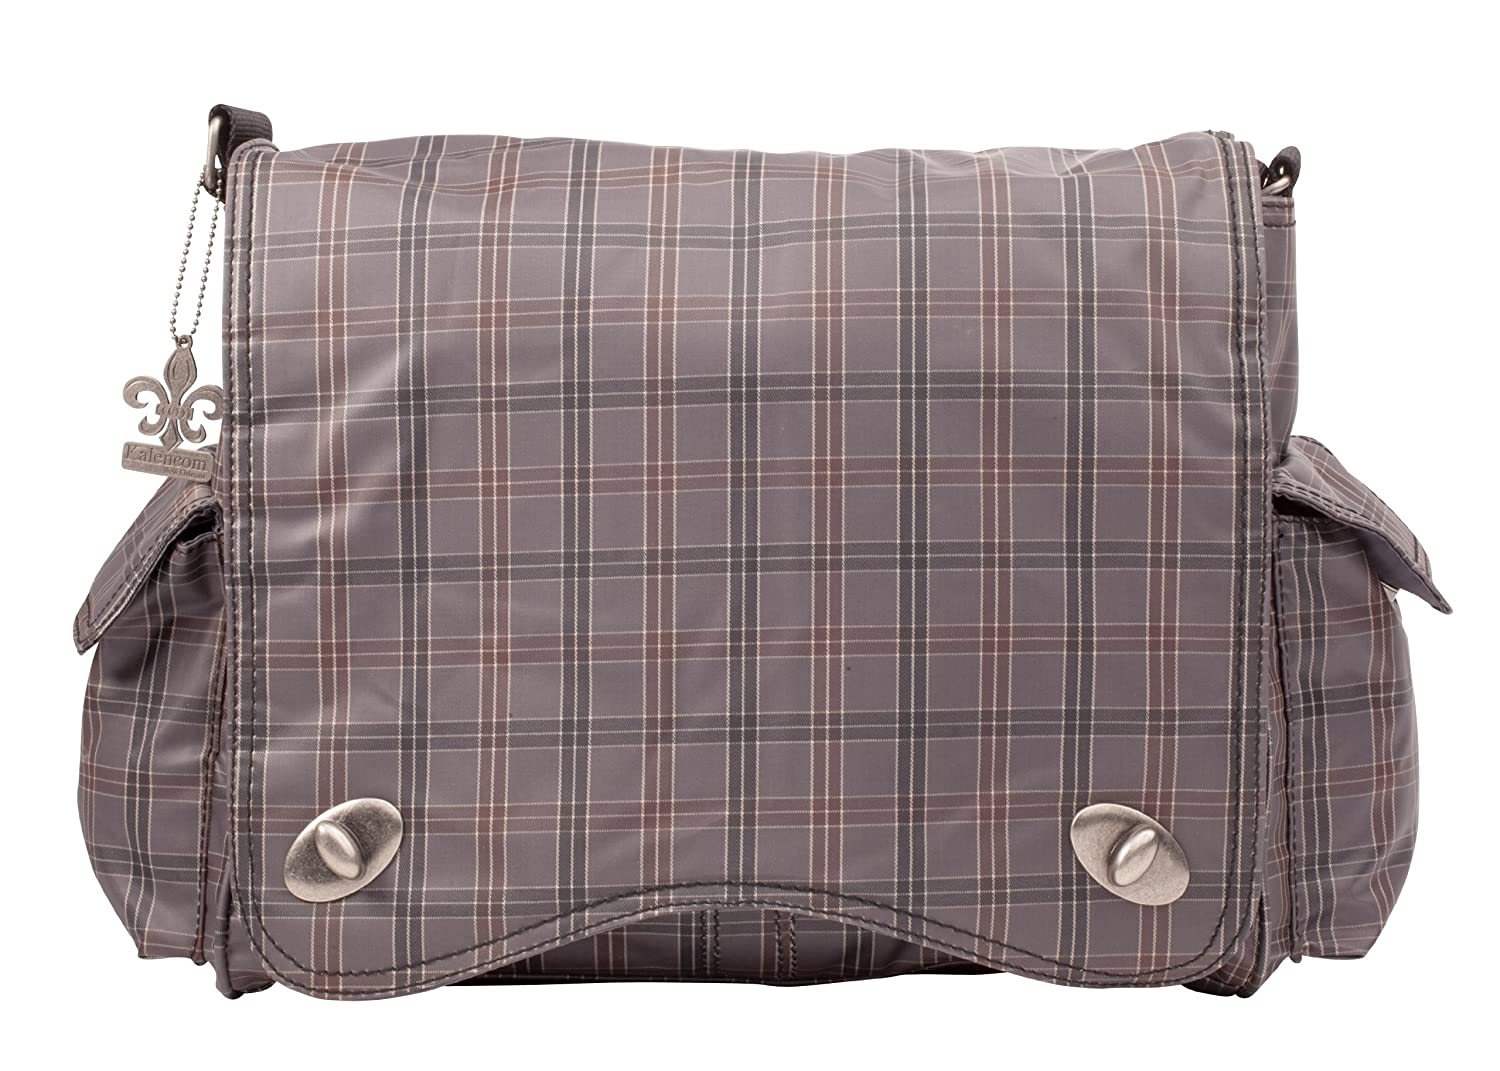 数量は多 Kalencom B001AD2P1S Diaper Bag, Bag, Gray Plaid by Kalencom Diaper B001AD2P1S, 太田町:fc0bcec0 --- hohpartnership-com.access.secure-ssl-servers.biz